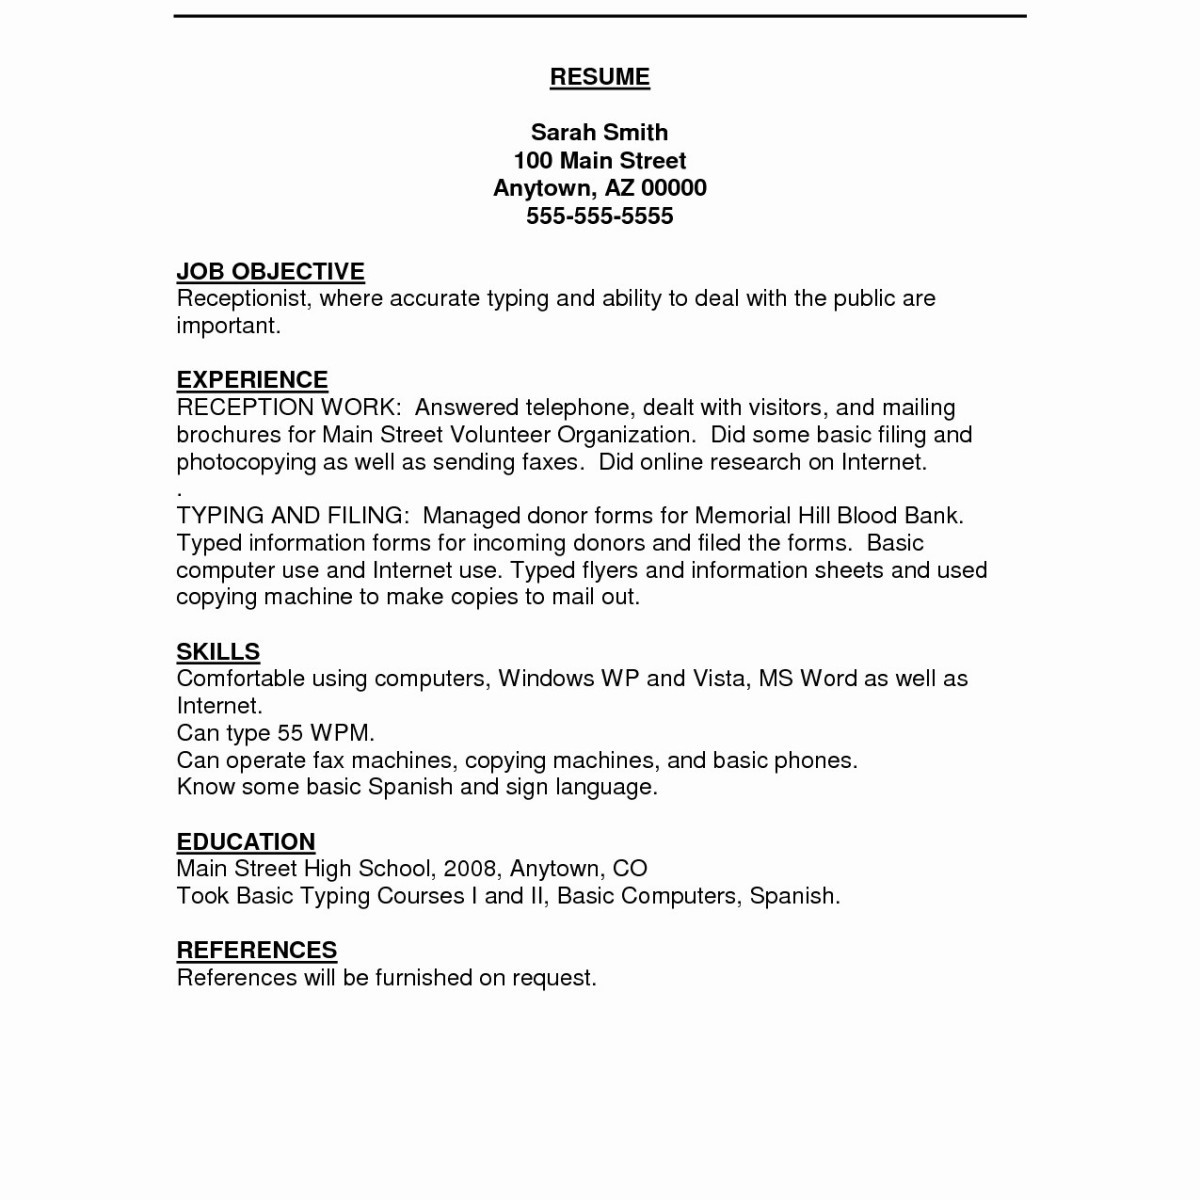 Sample Technical Resume - Information Technology Resume Examples Cute Technical Resume